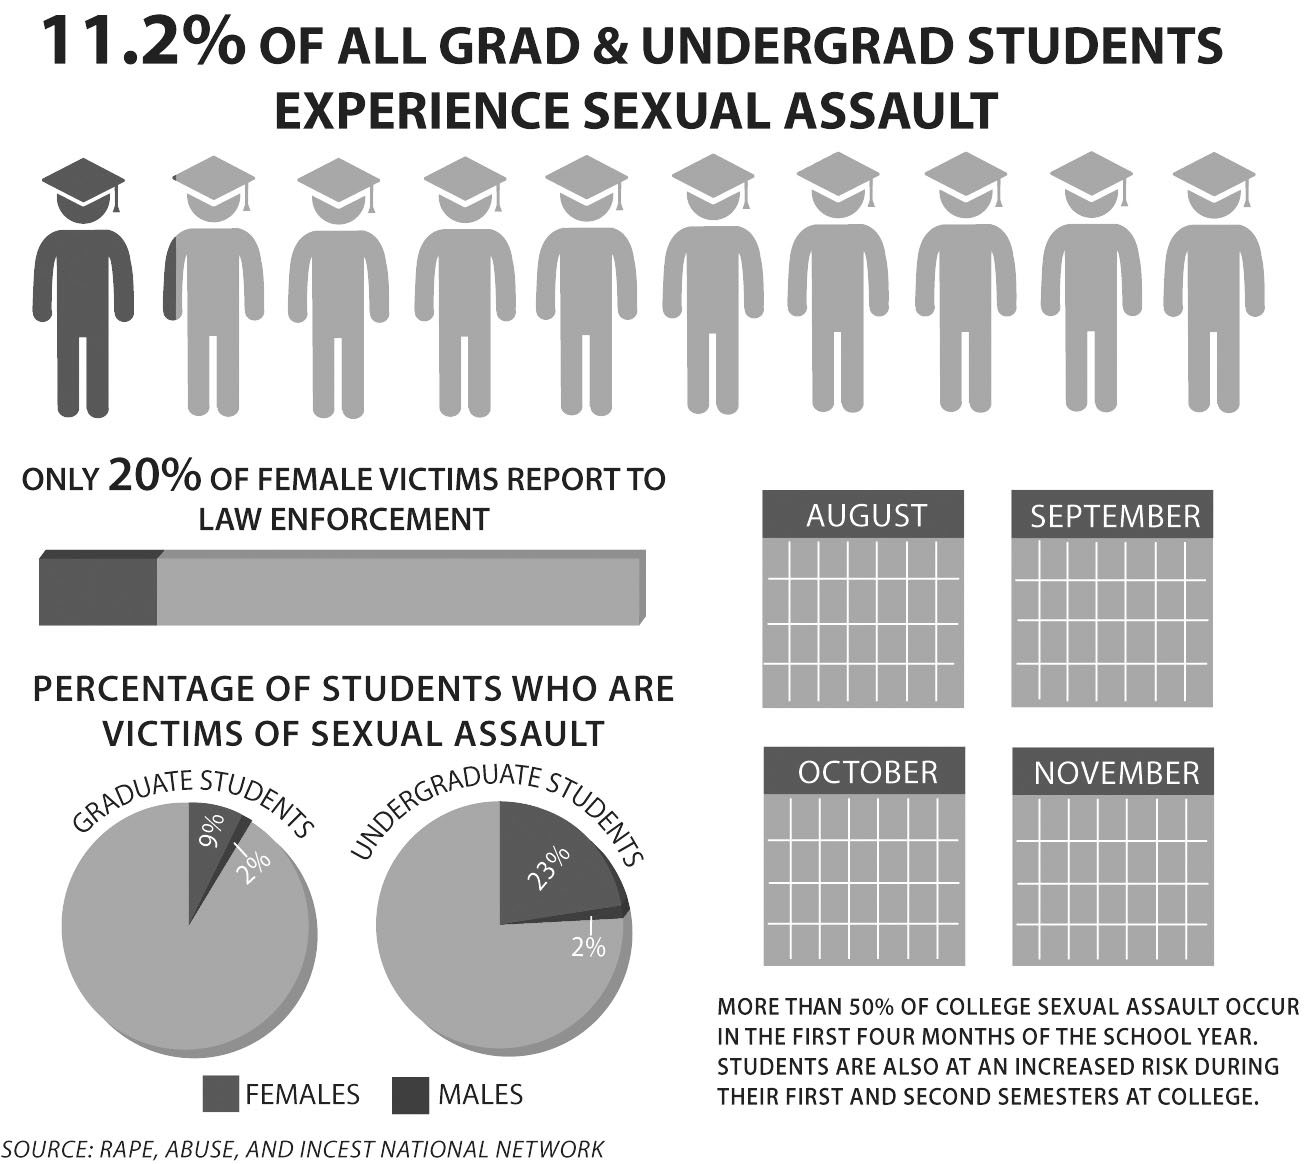 Rape survivors need support, understanding from community